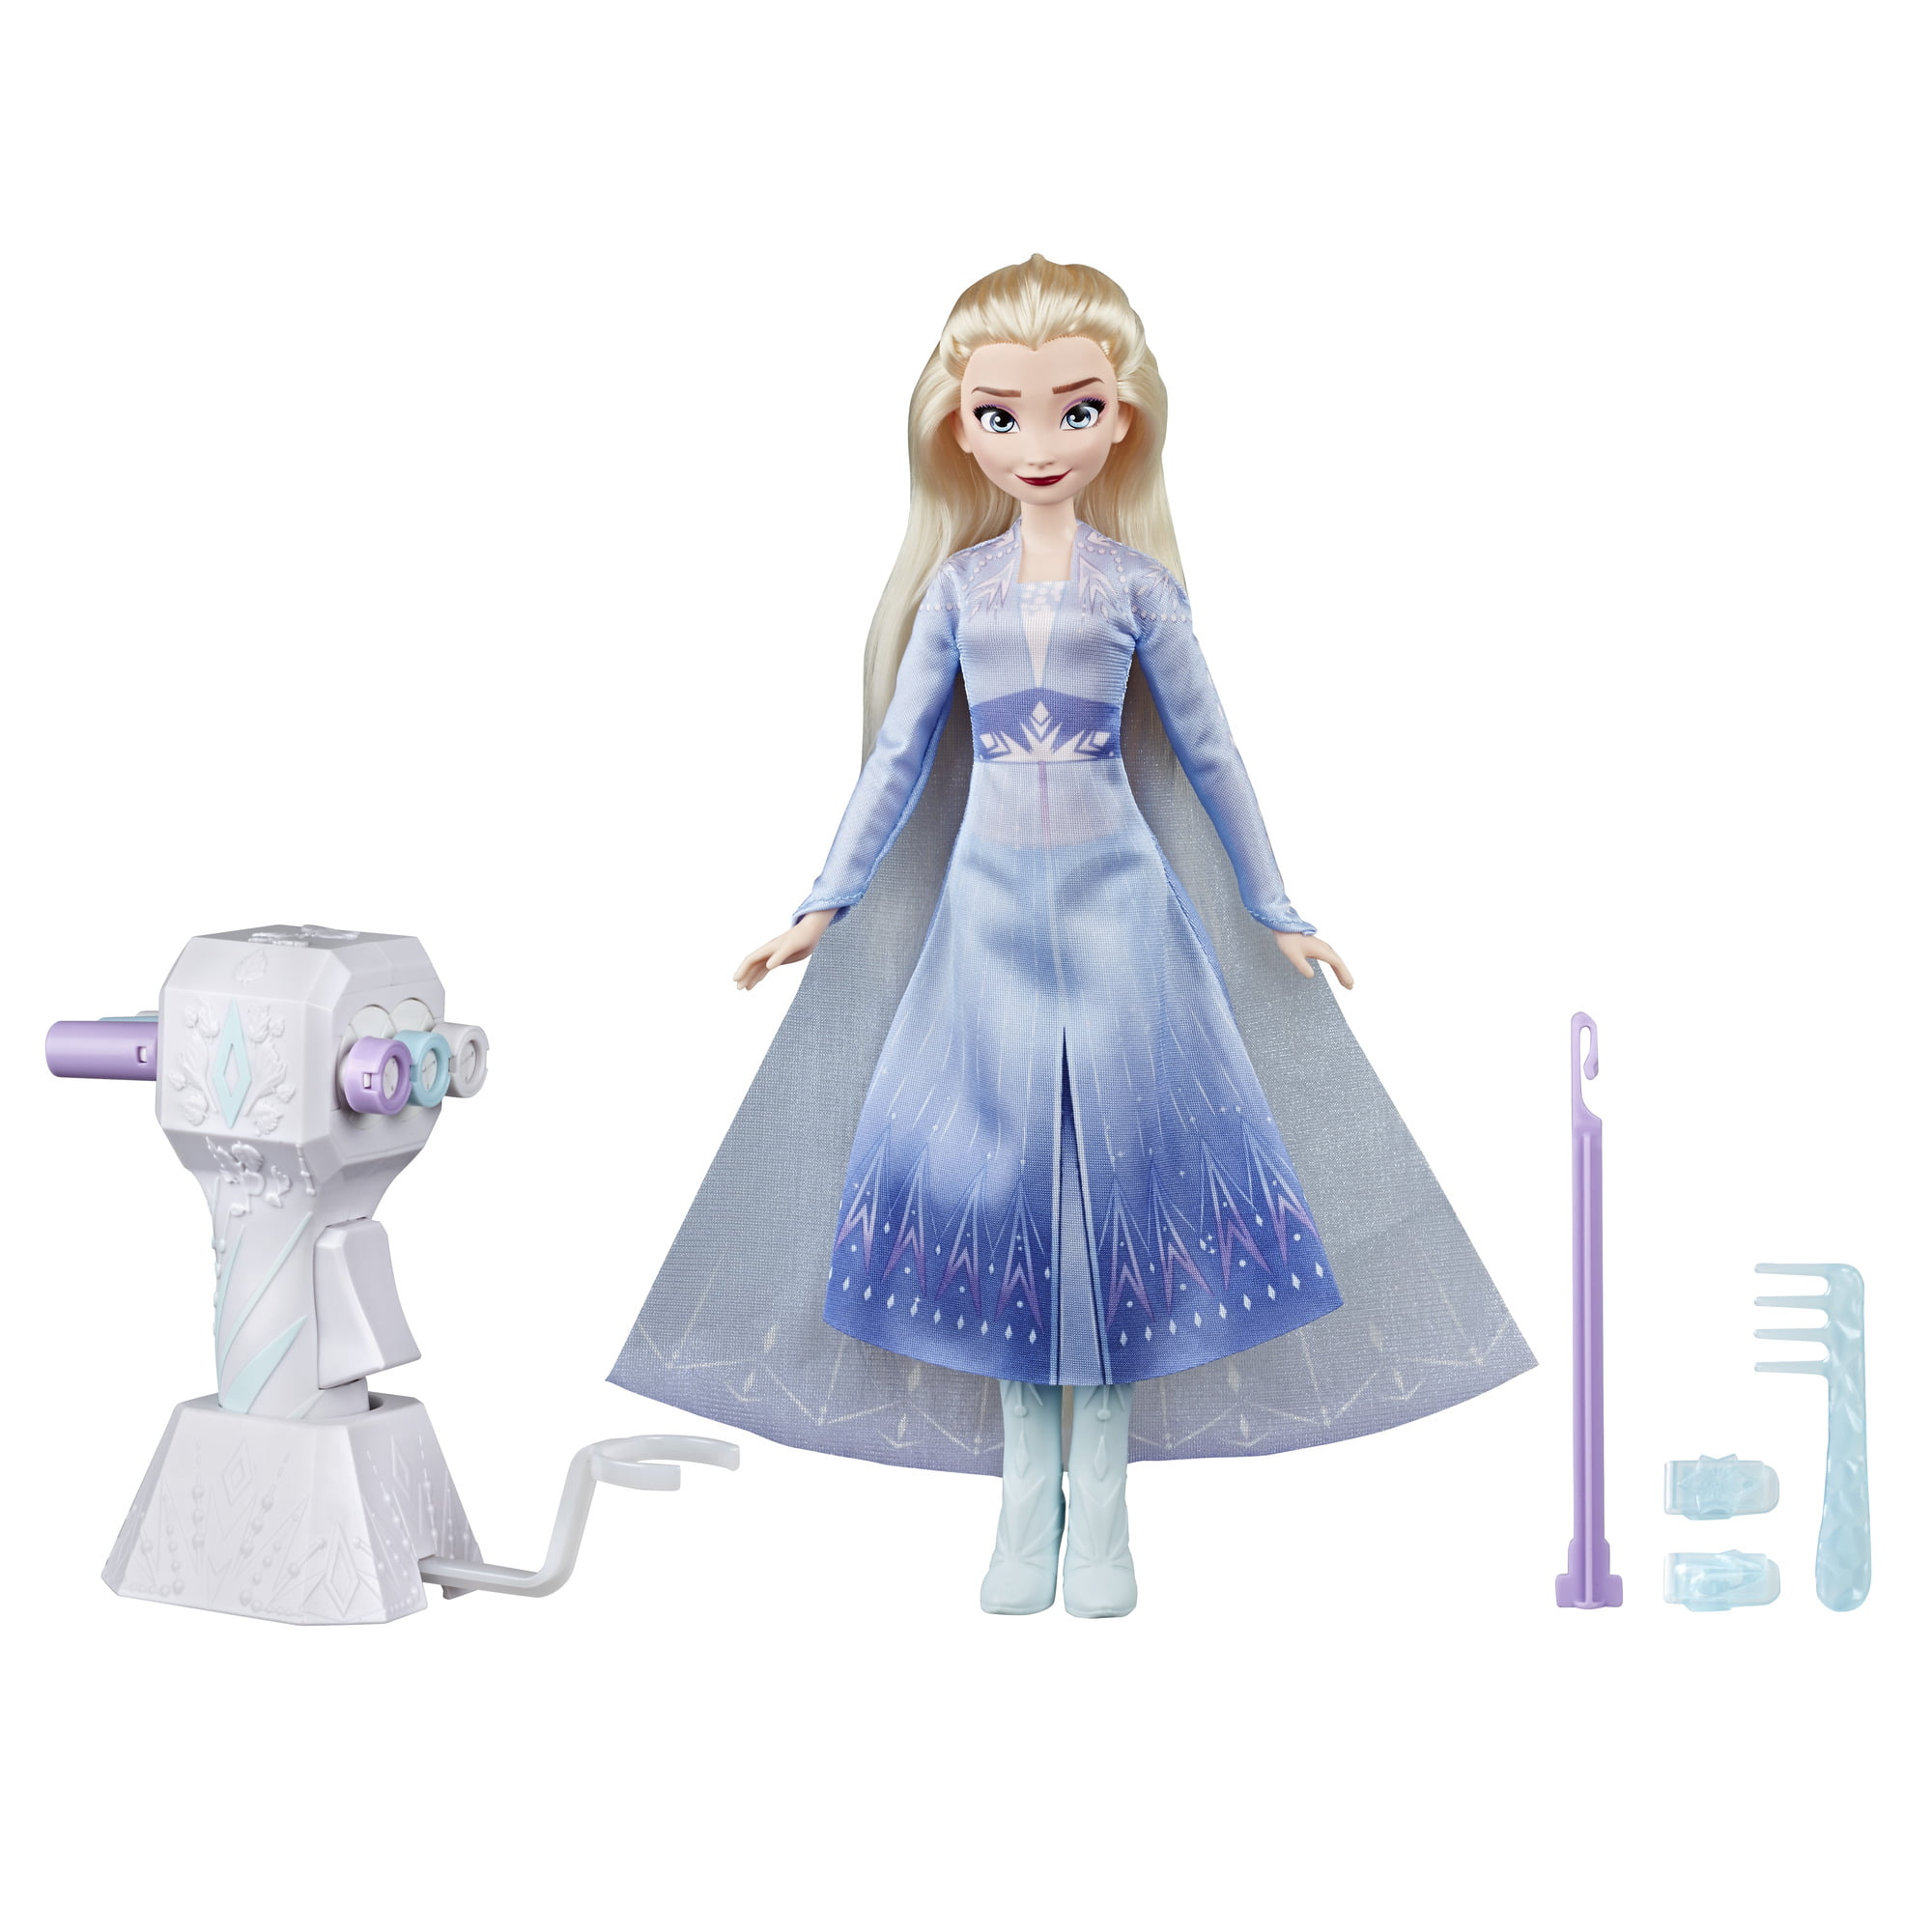 Disney Frozen 2 Sister Styles Long Hair Elsa Fashion Doll with Automatic Hair Braiding Tool